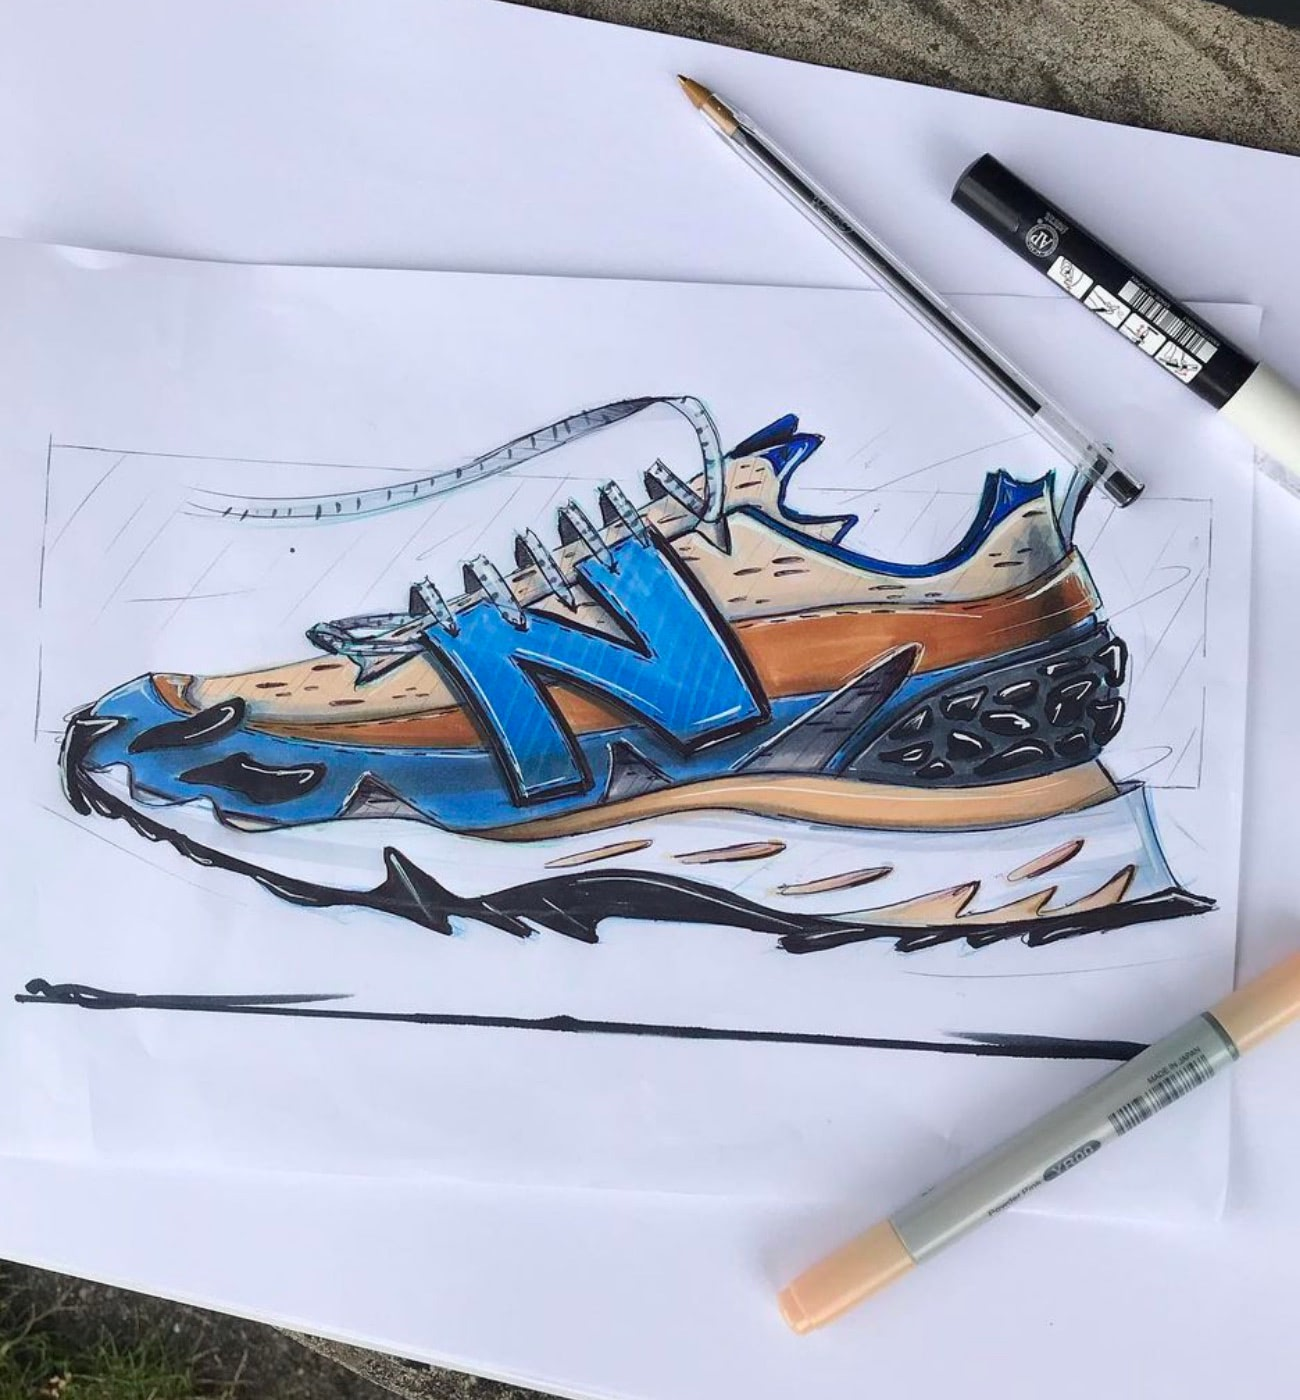 A mock-up of a New Balance sneaker